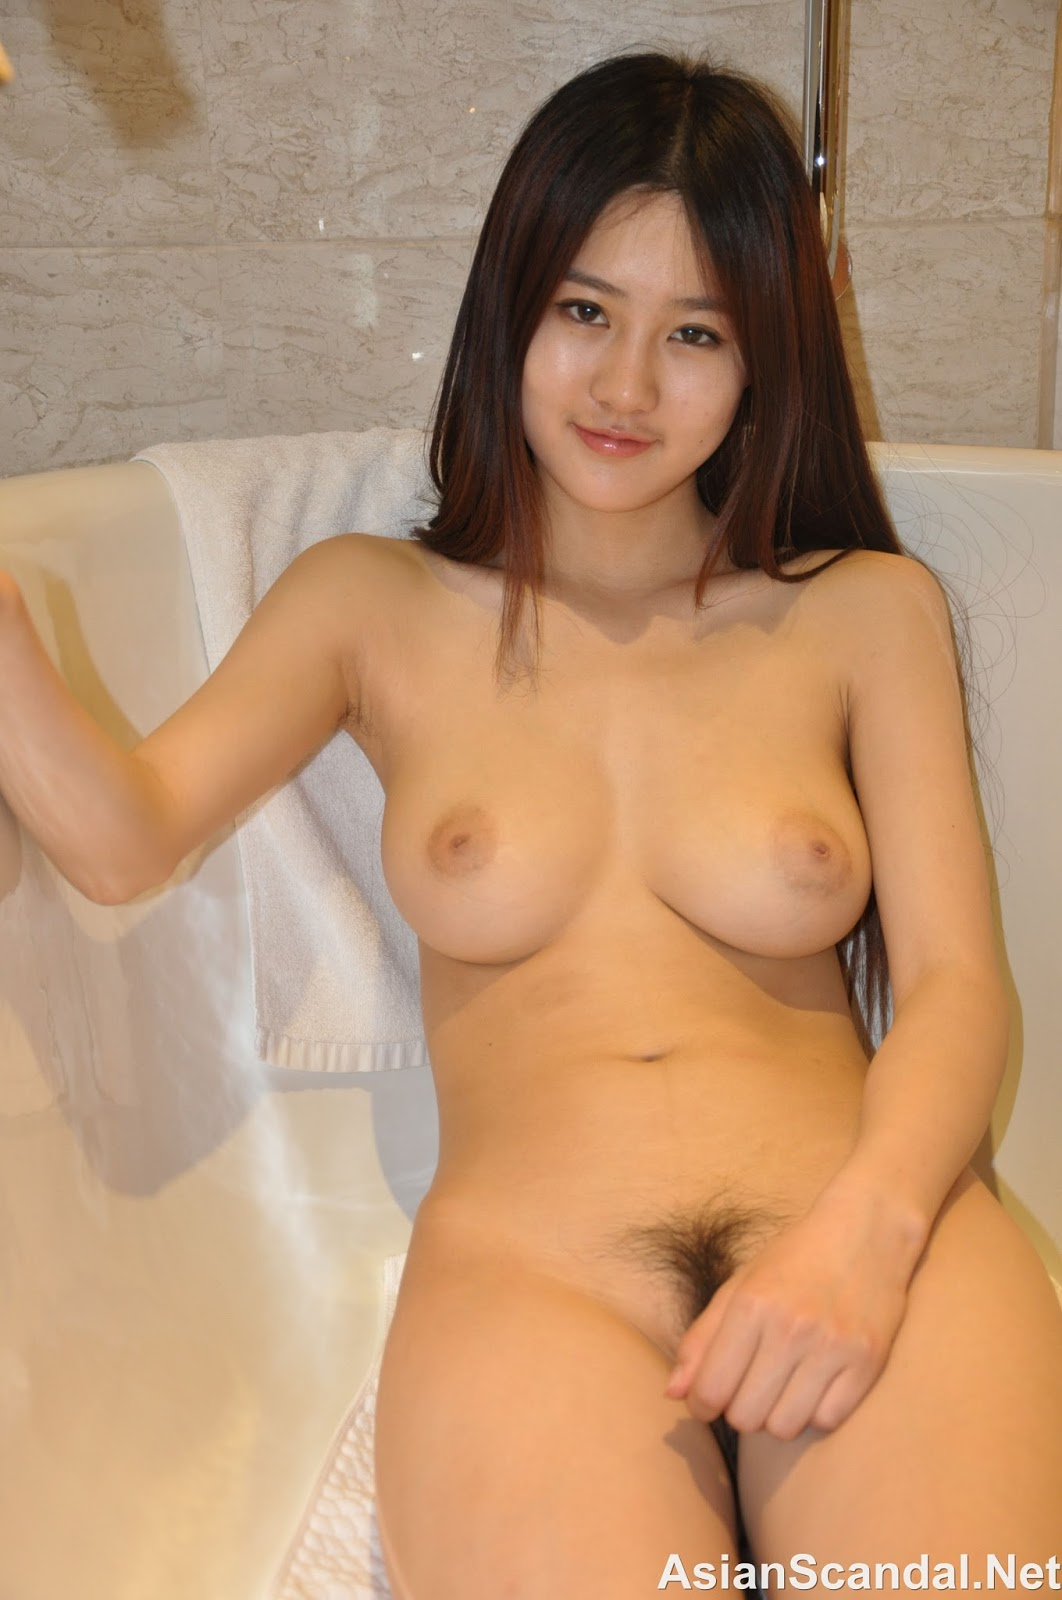 Girl korea hot nude